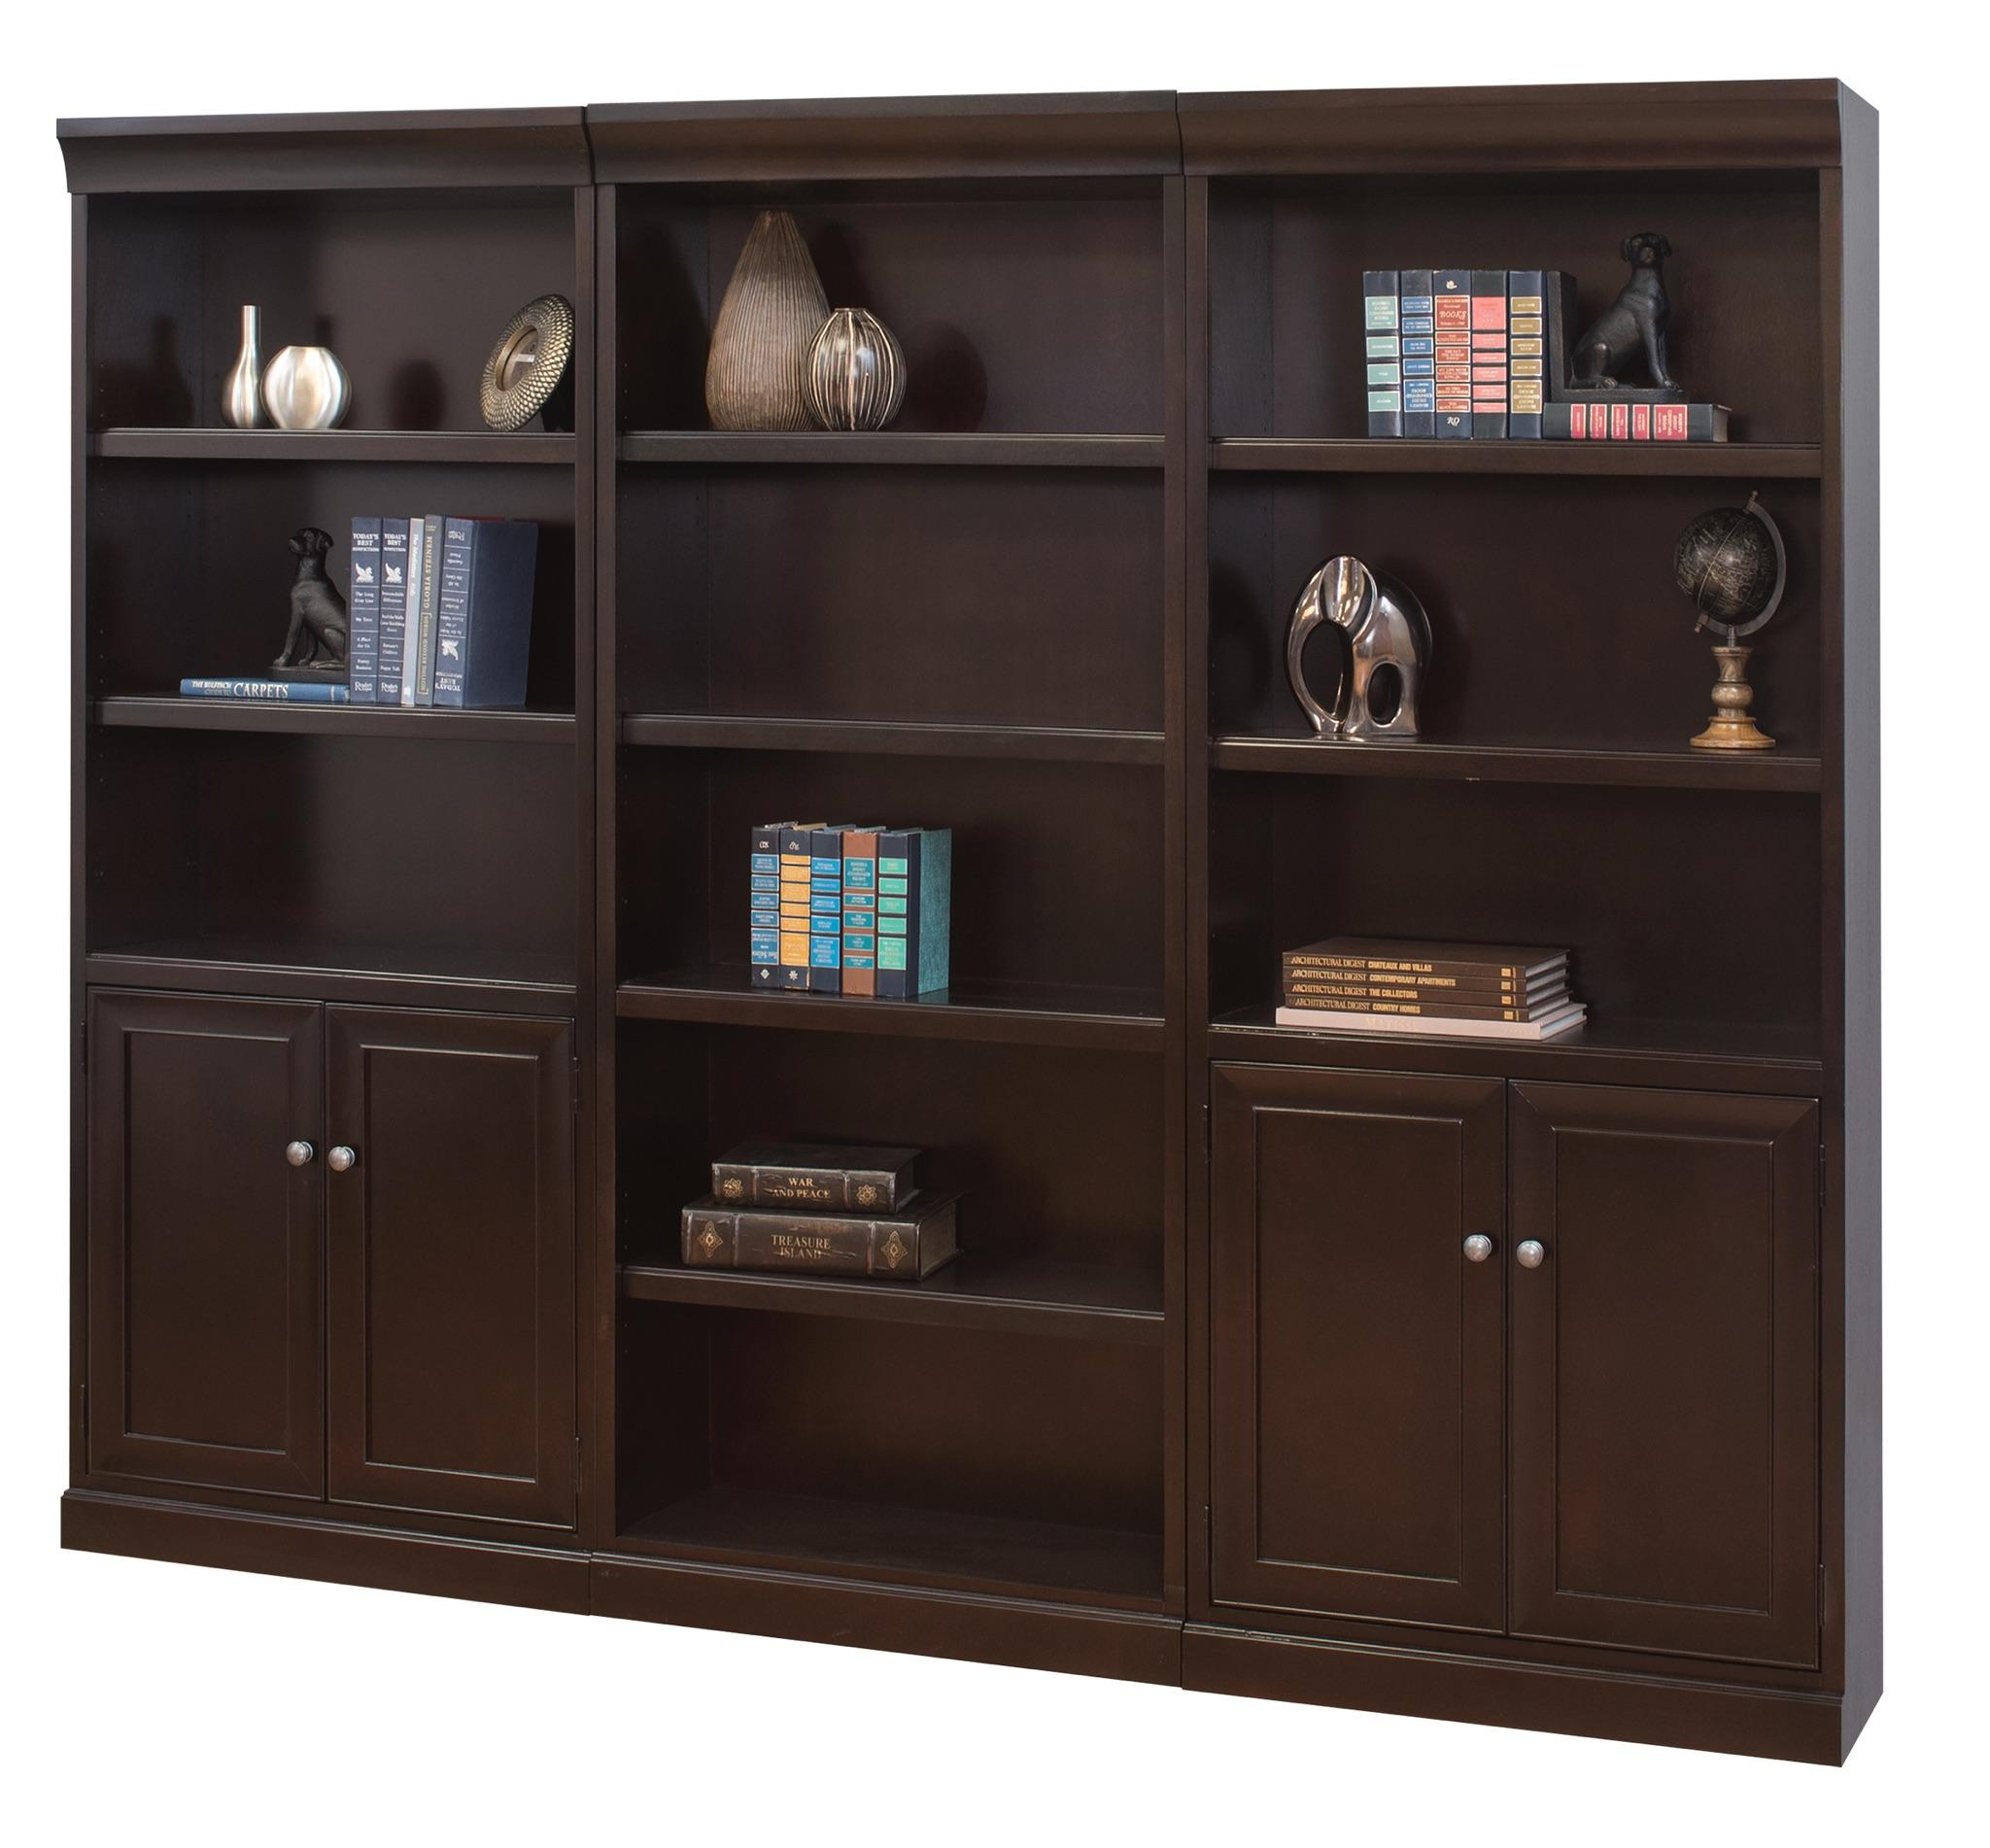 of home today contemporary product divider on garden free shipping furniture espresso display cabinet double yodell wheels bookcases overstock sided bookshelf room bookcase america